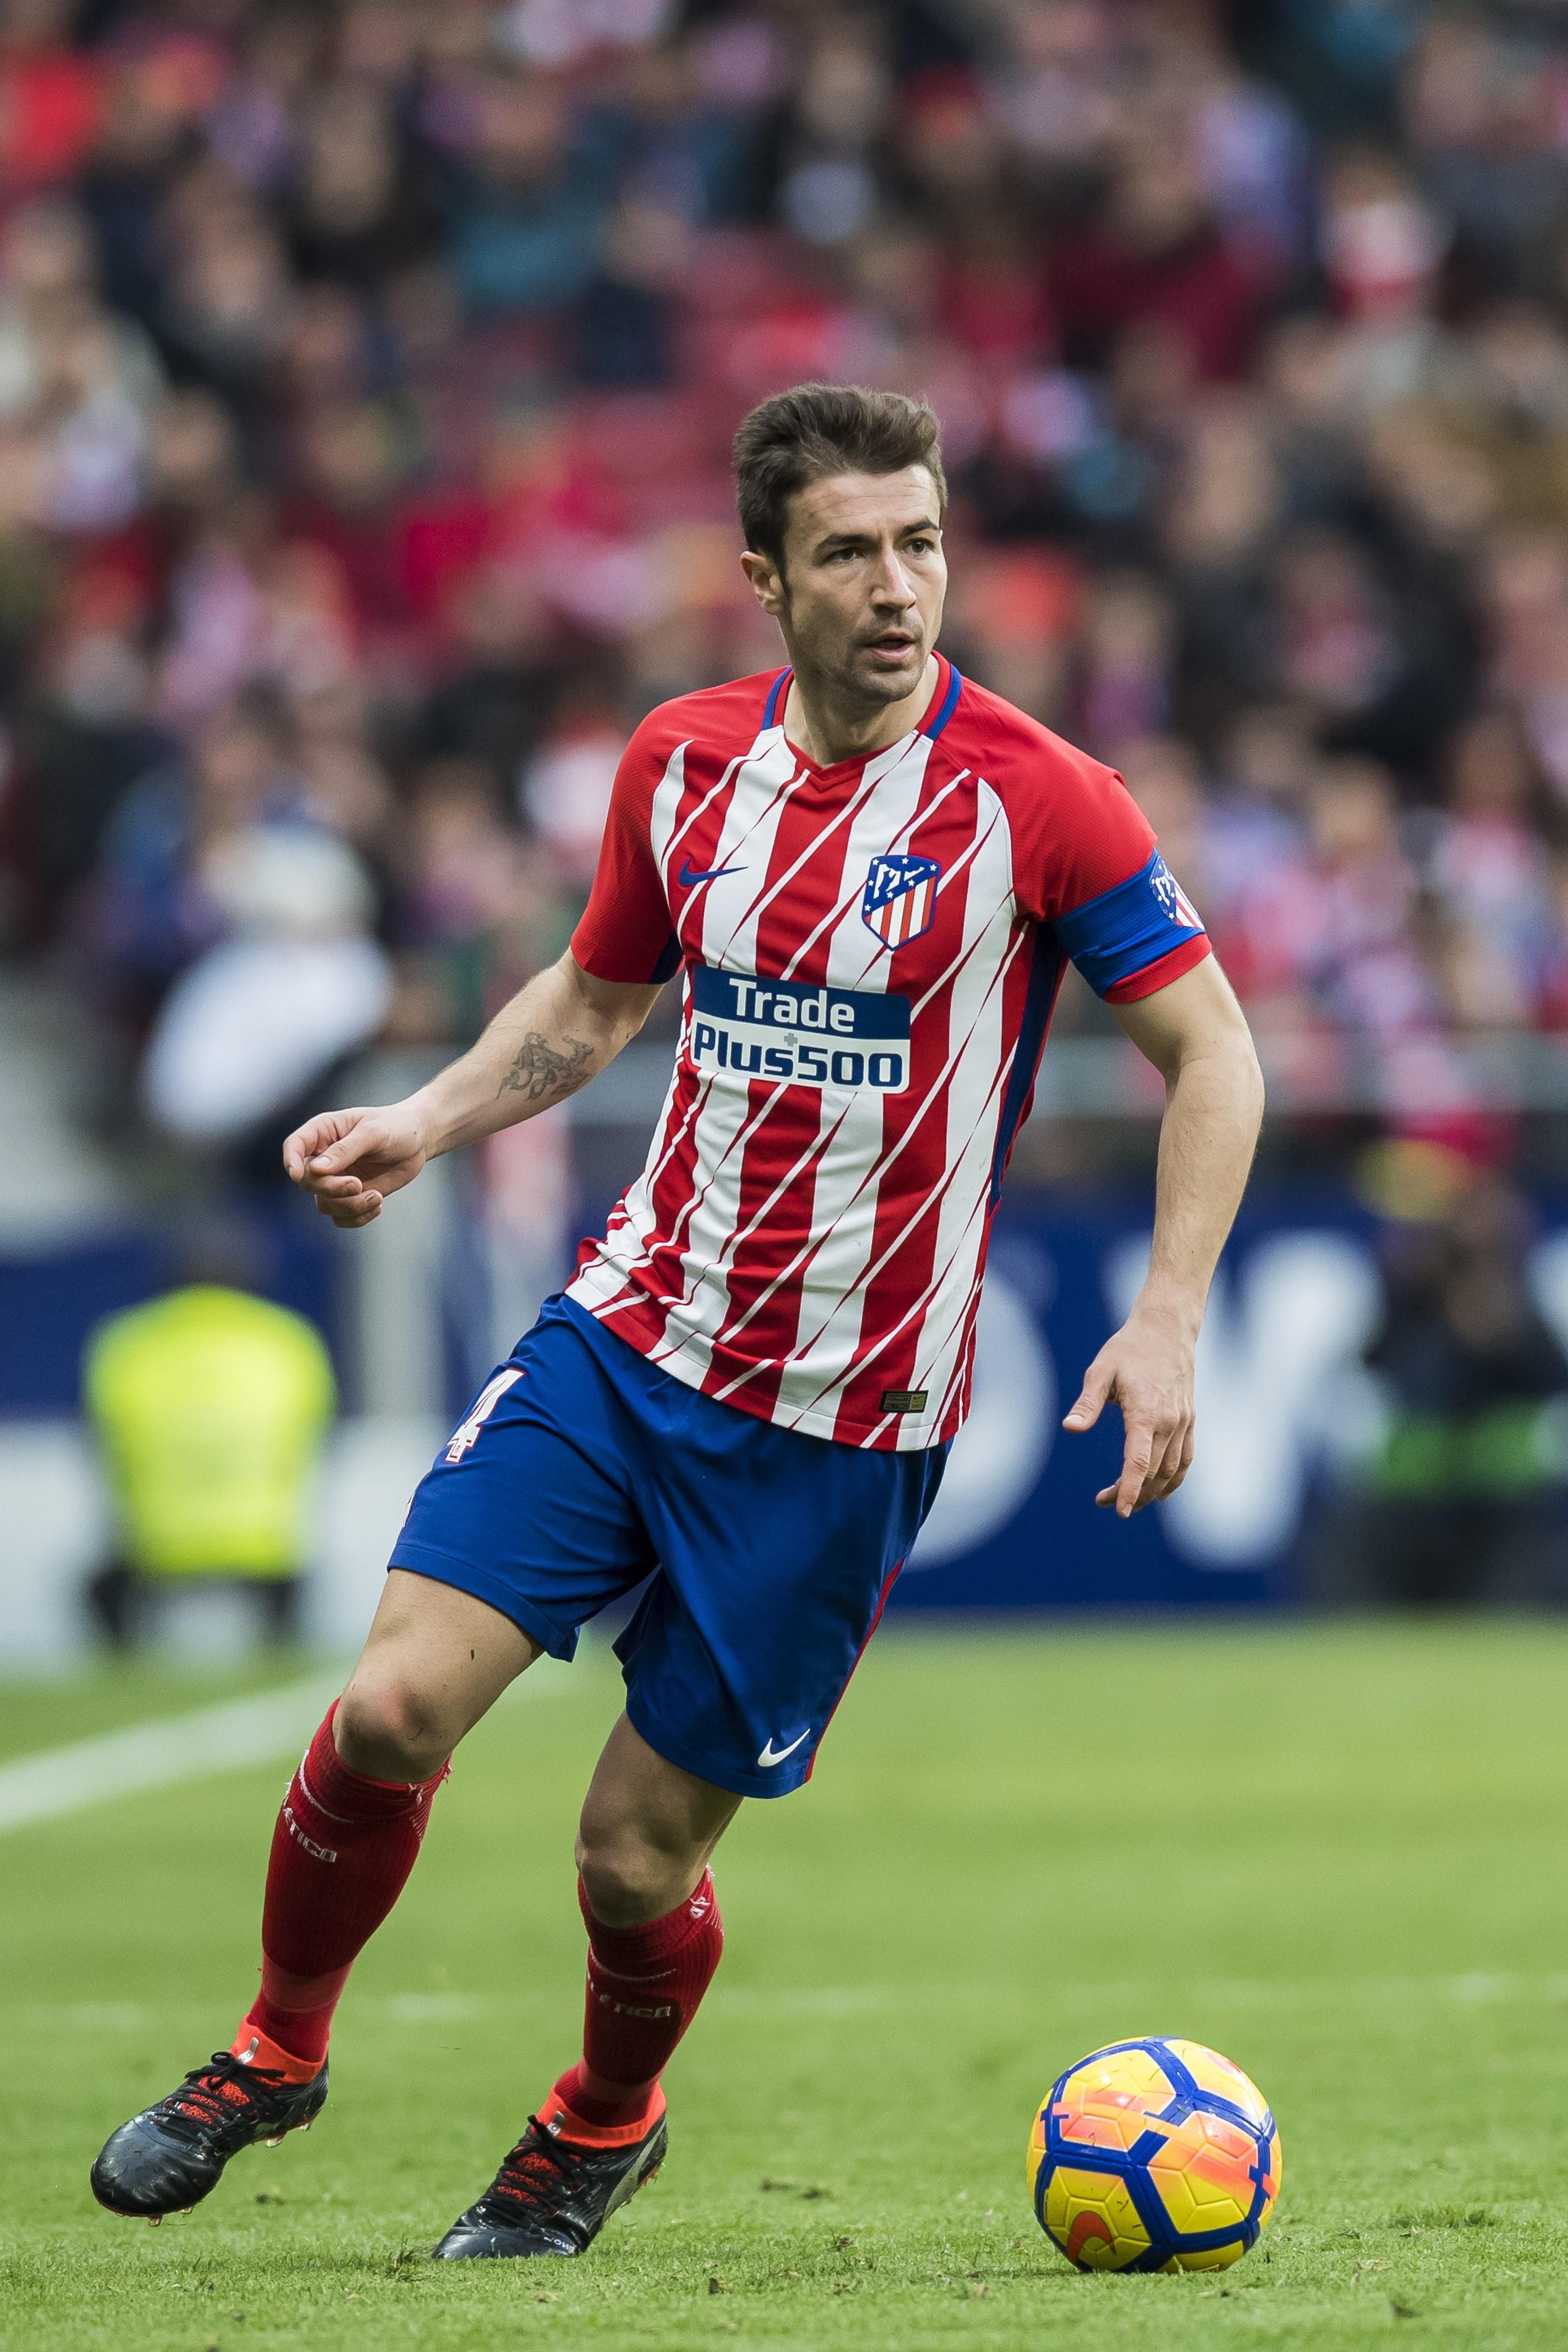 Gabi was team-mates with Herrera at Zaragoza